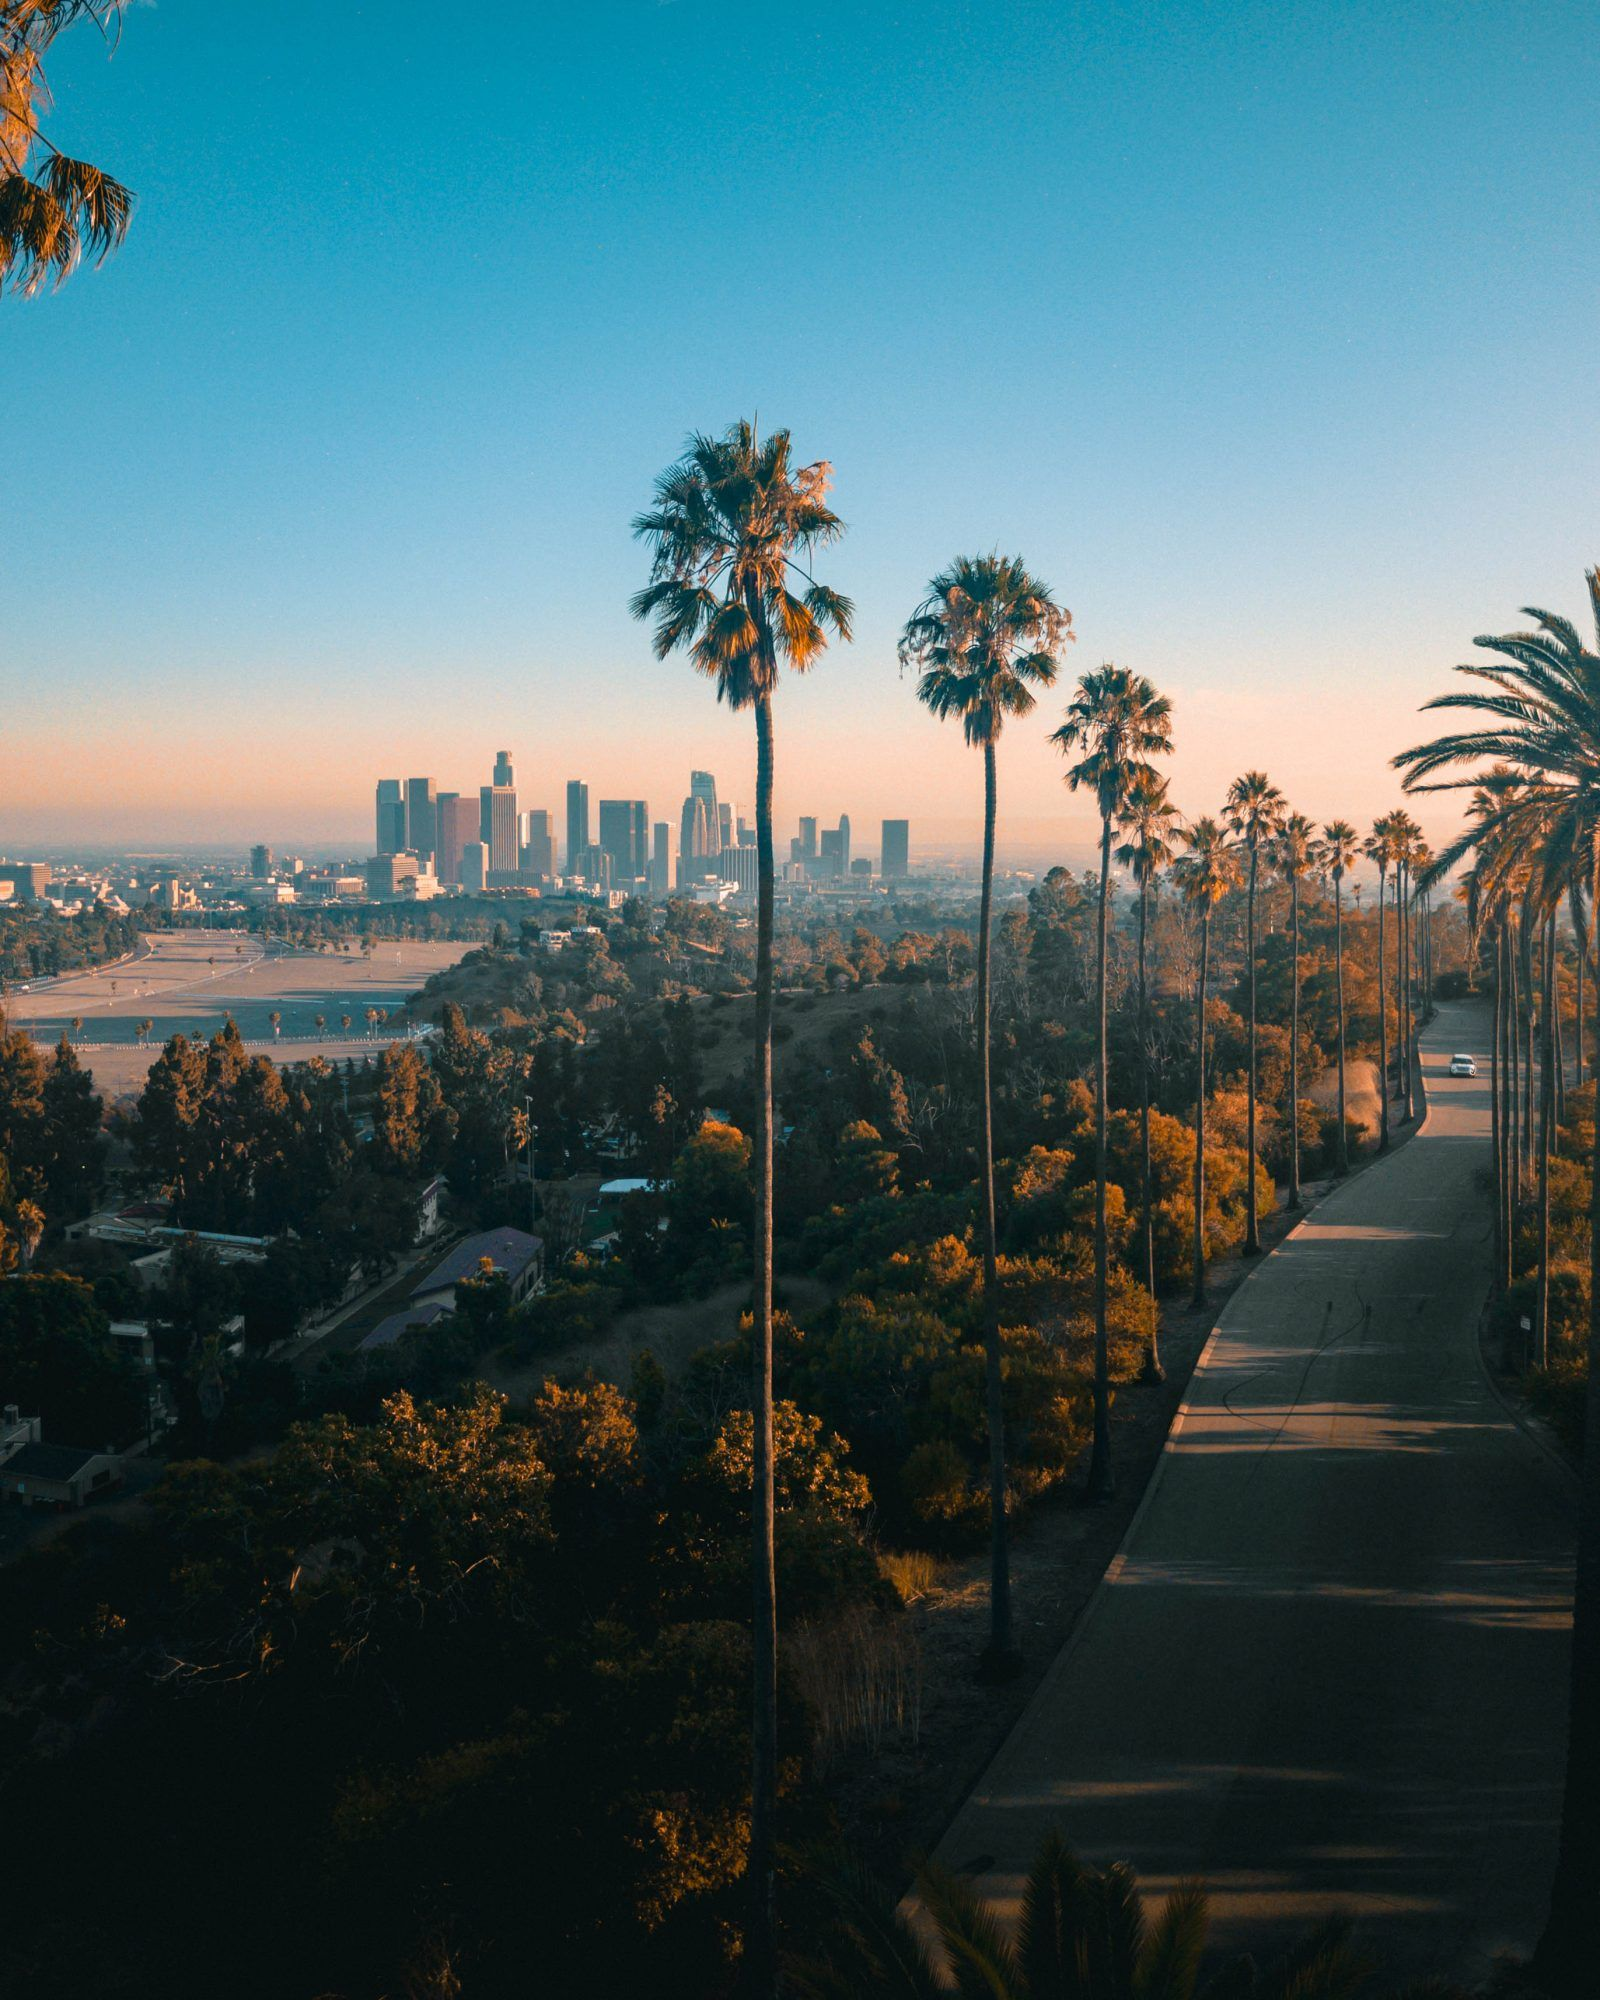 The 19 Best Places To Photograph In Los Angeles Travel Guide Los Angeles Travel California Travel Los Angeles Travel Guide